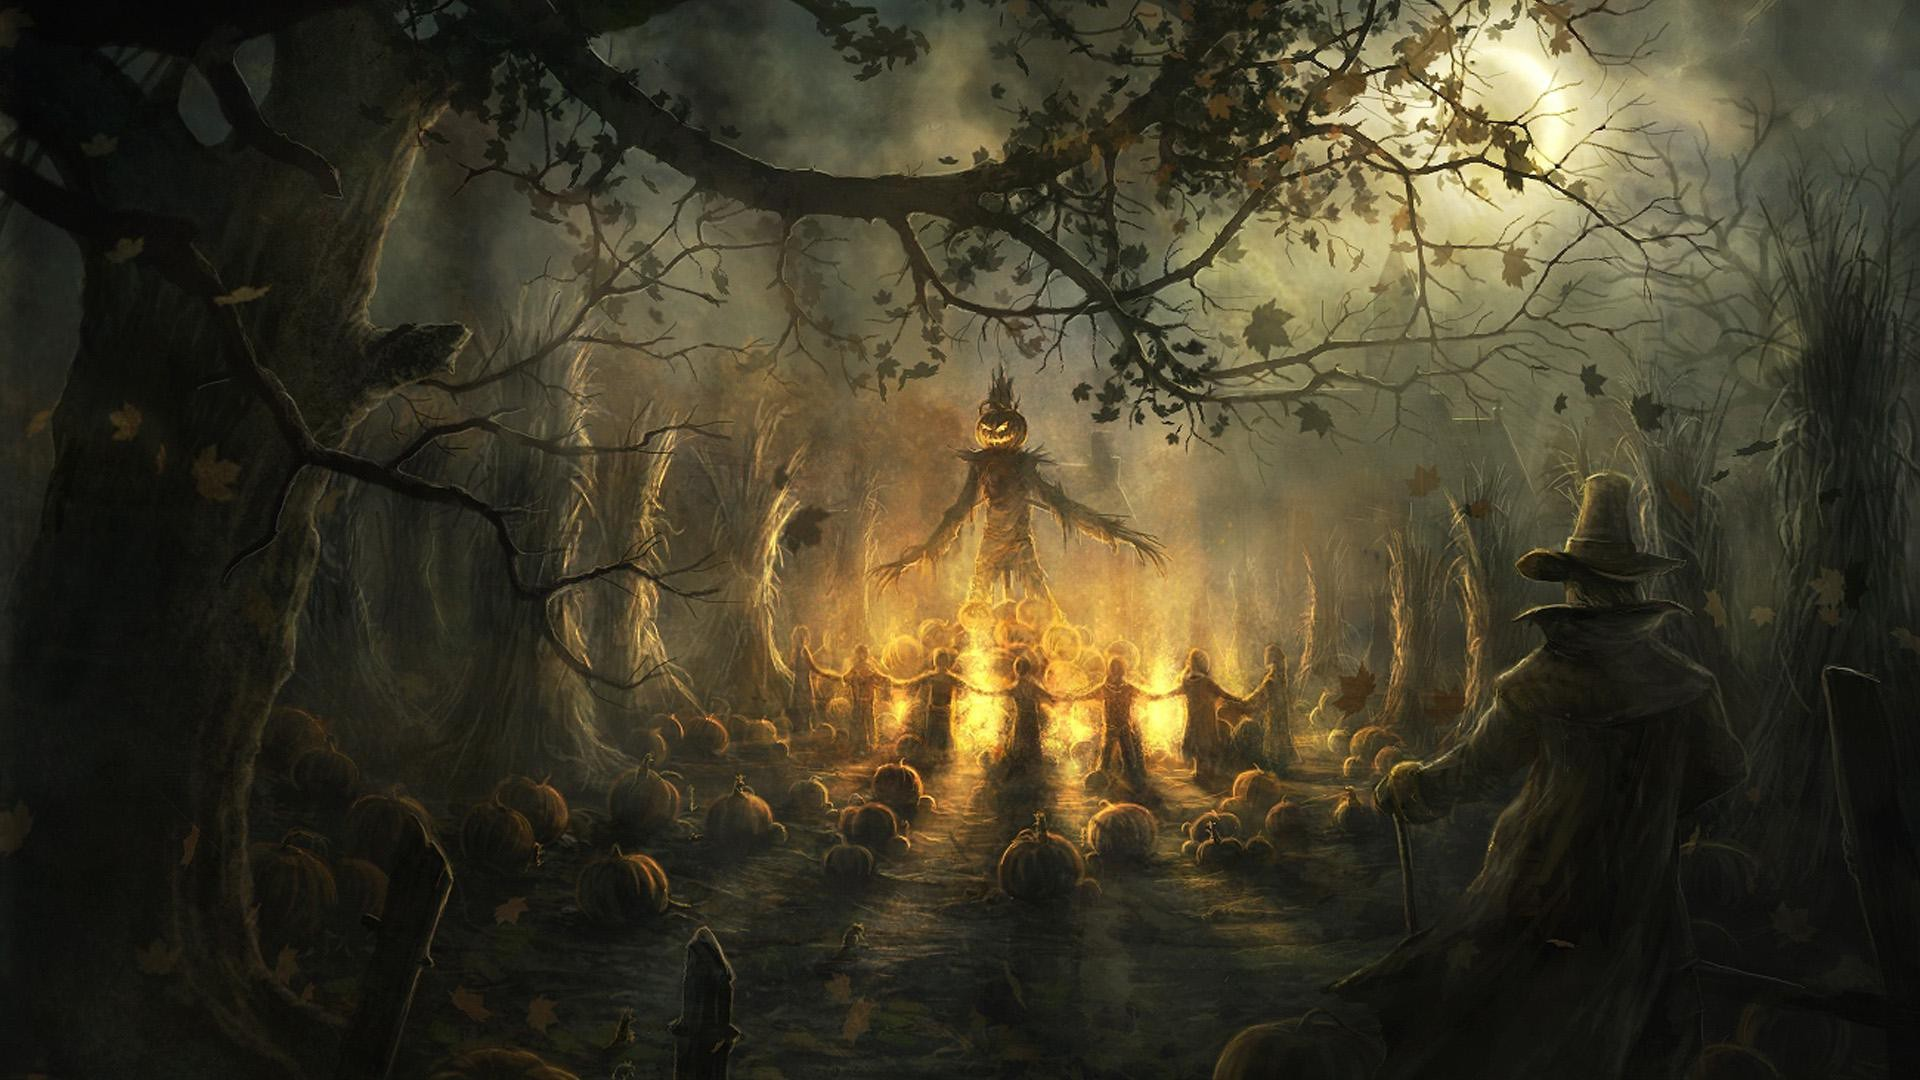 Hd Horror Wallpapers 1080p 60 Images